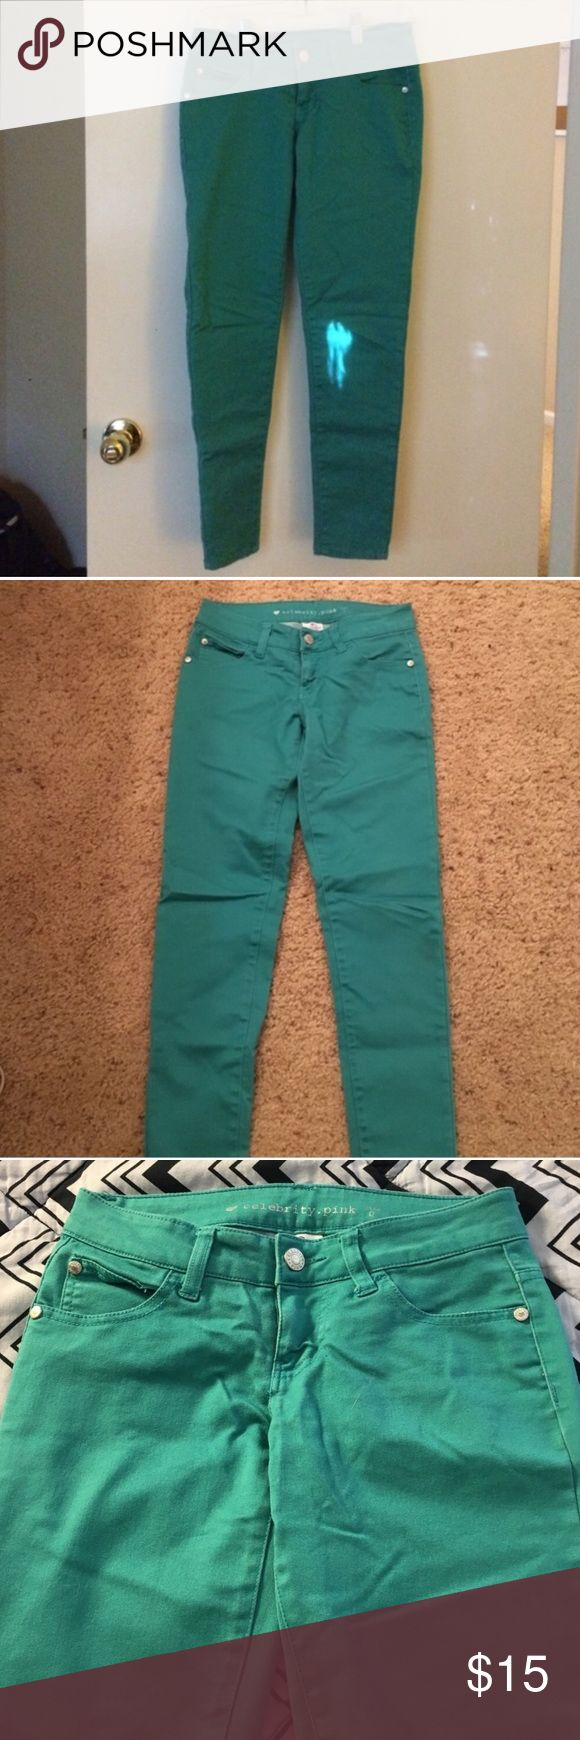 Aqua Jeans Perfect condition (only worn one time) aqua colored celebrity pink jeans from Macy's! Material is 82% cotton, 16% polyester, 2% spandex. Inseam is 27 inches! Macy's Jeans Skinny